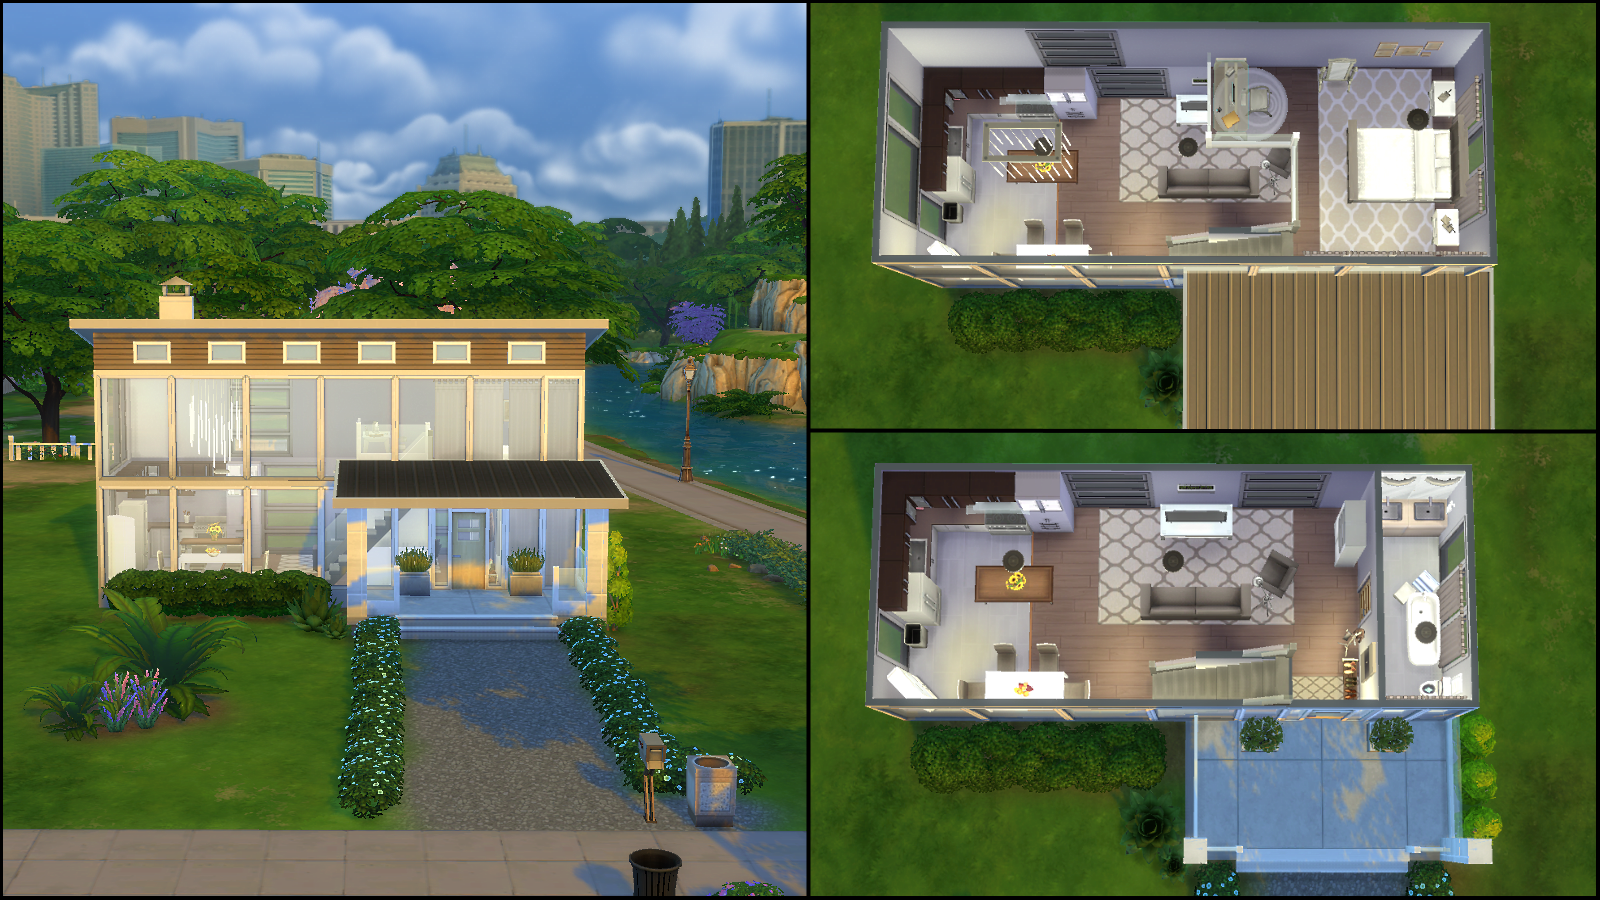 2 modern tiny home by dcsmith052414 51715 - Sims 4 Home Design 2